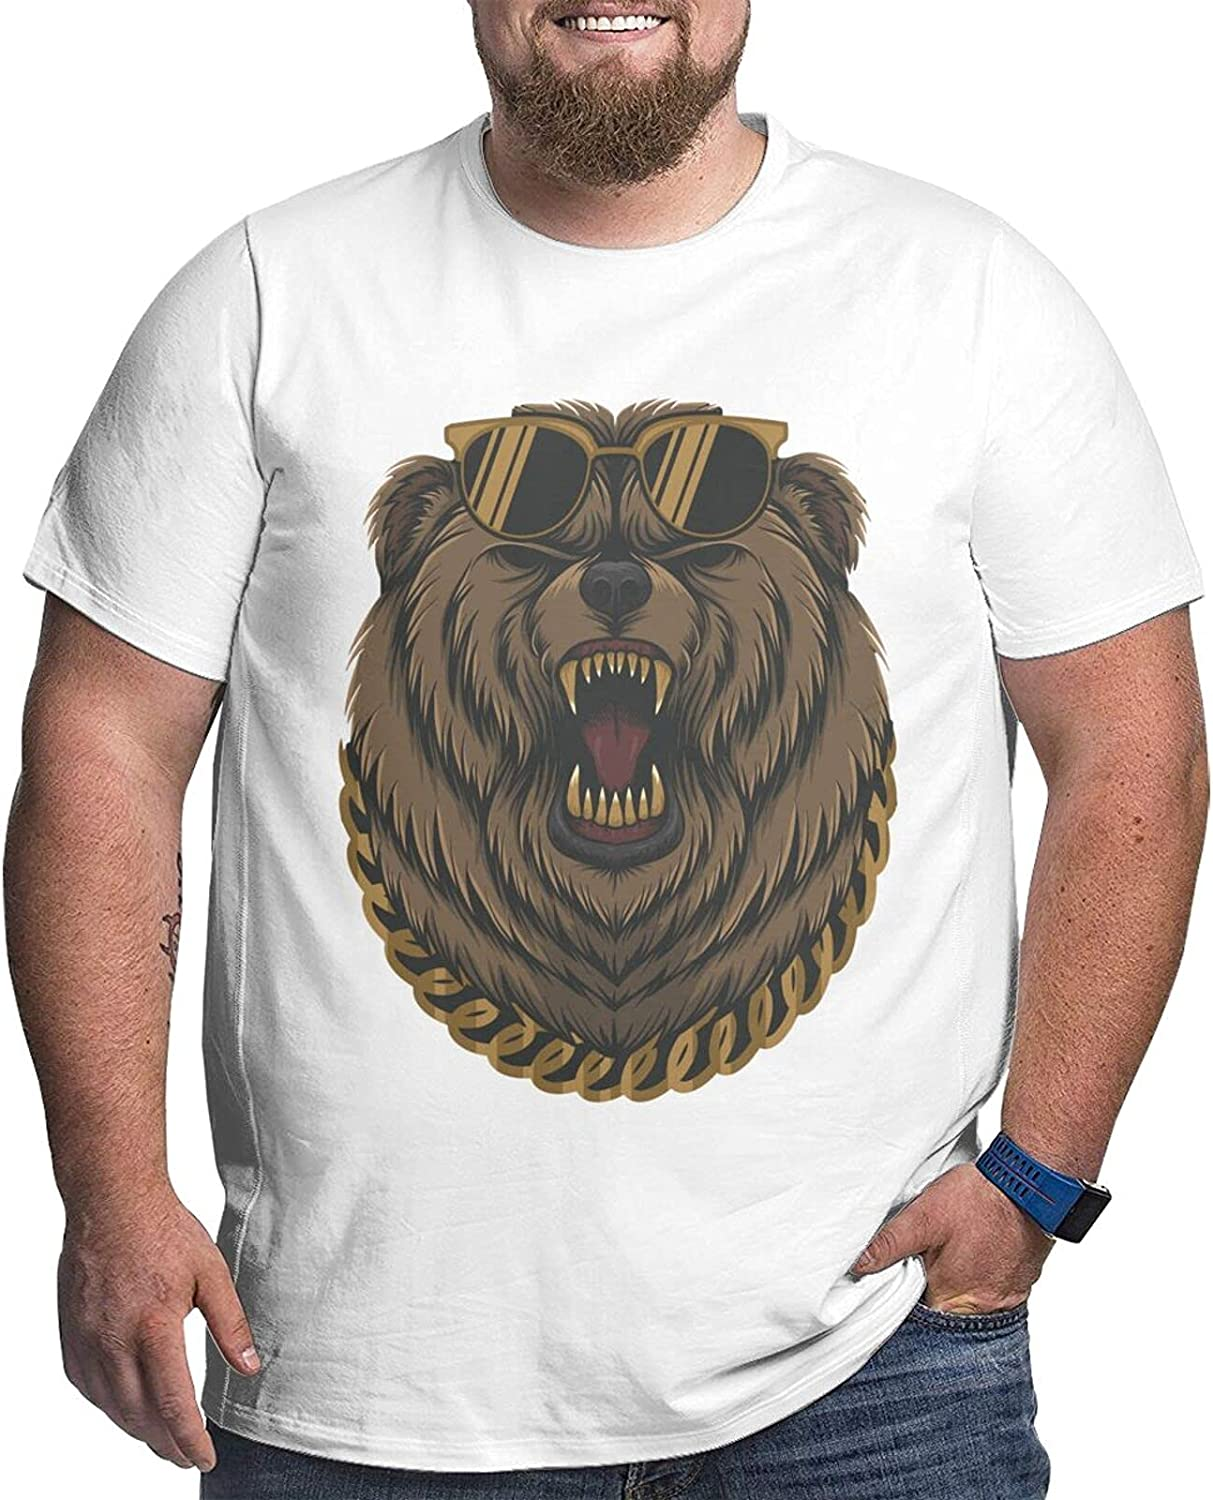 Angry Cool Bear Gold Chain Men Simple Big Size Summer Outdoor Short Sleeve Tshirts